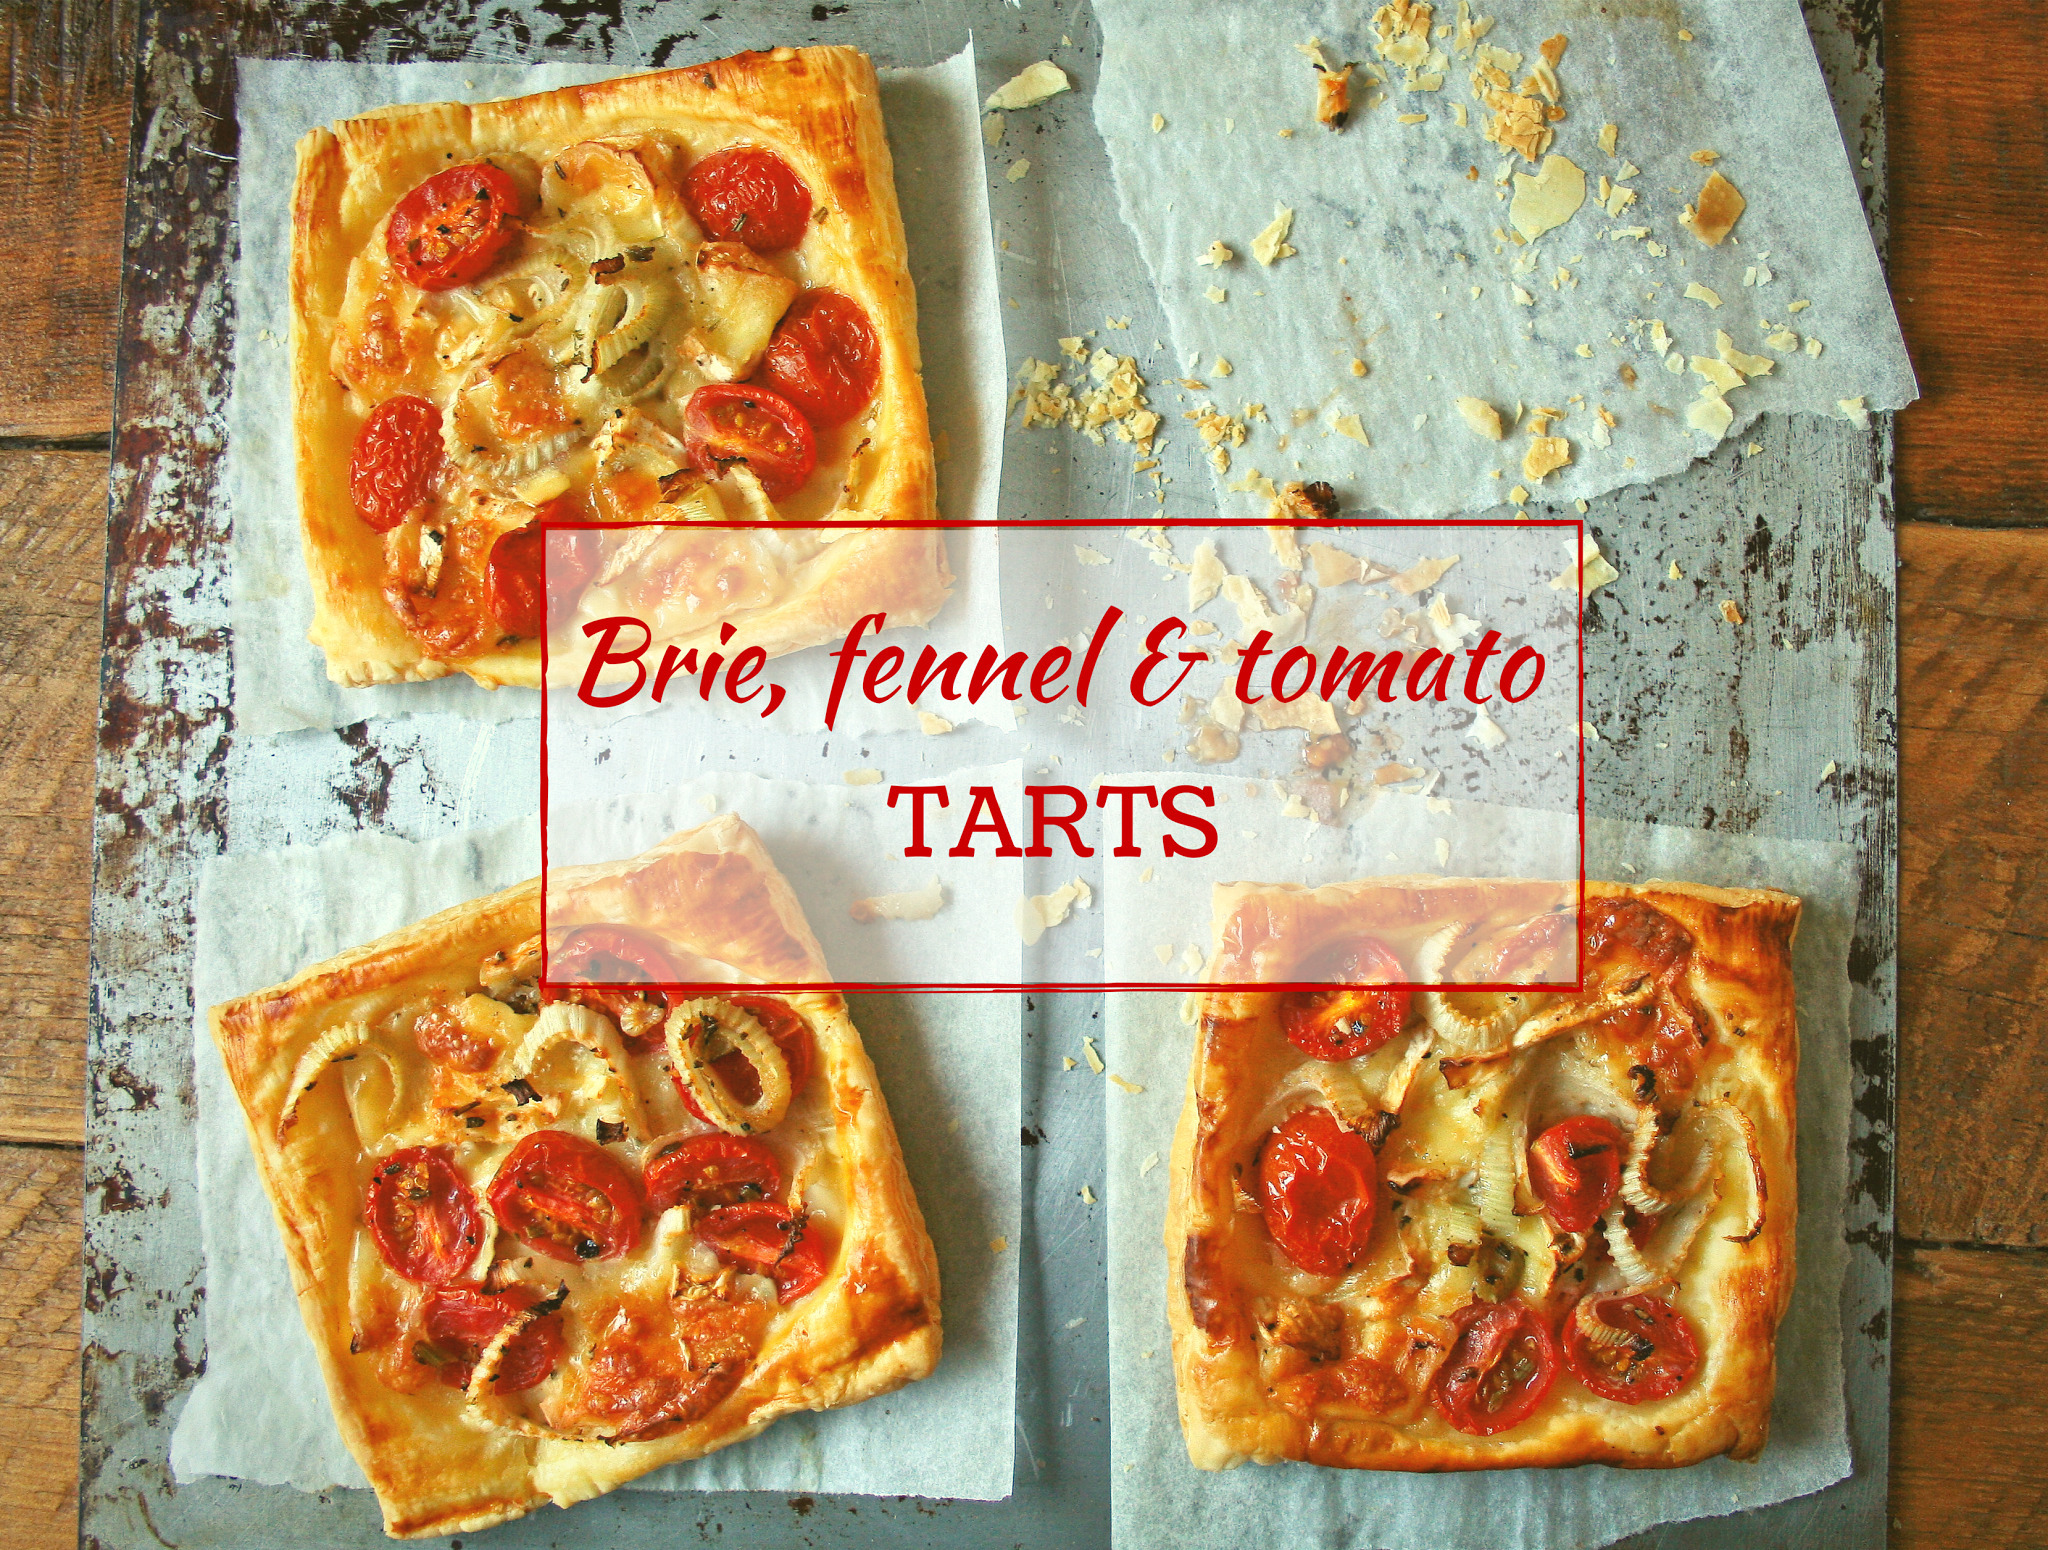 cupcakes-and-couscous wrote a new post, Brie, fennel & tomato tarts, on the site Cupcakes & Couscous